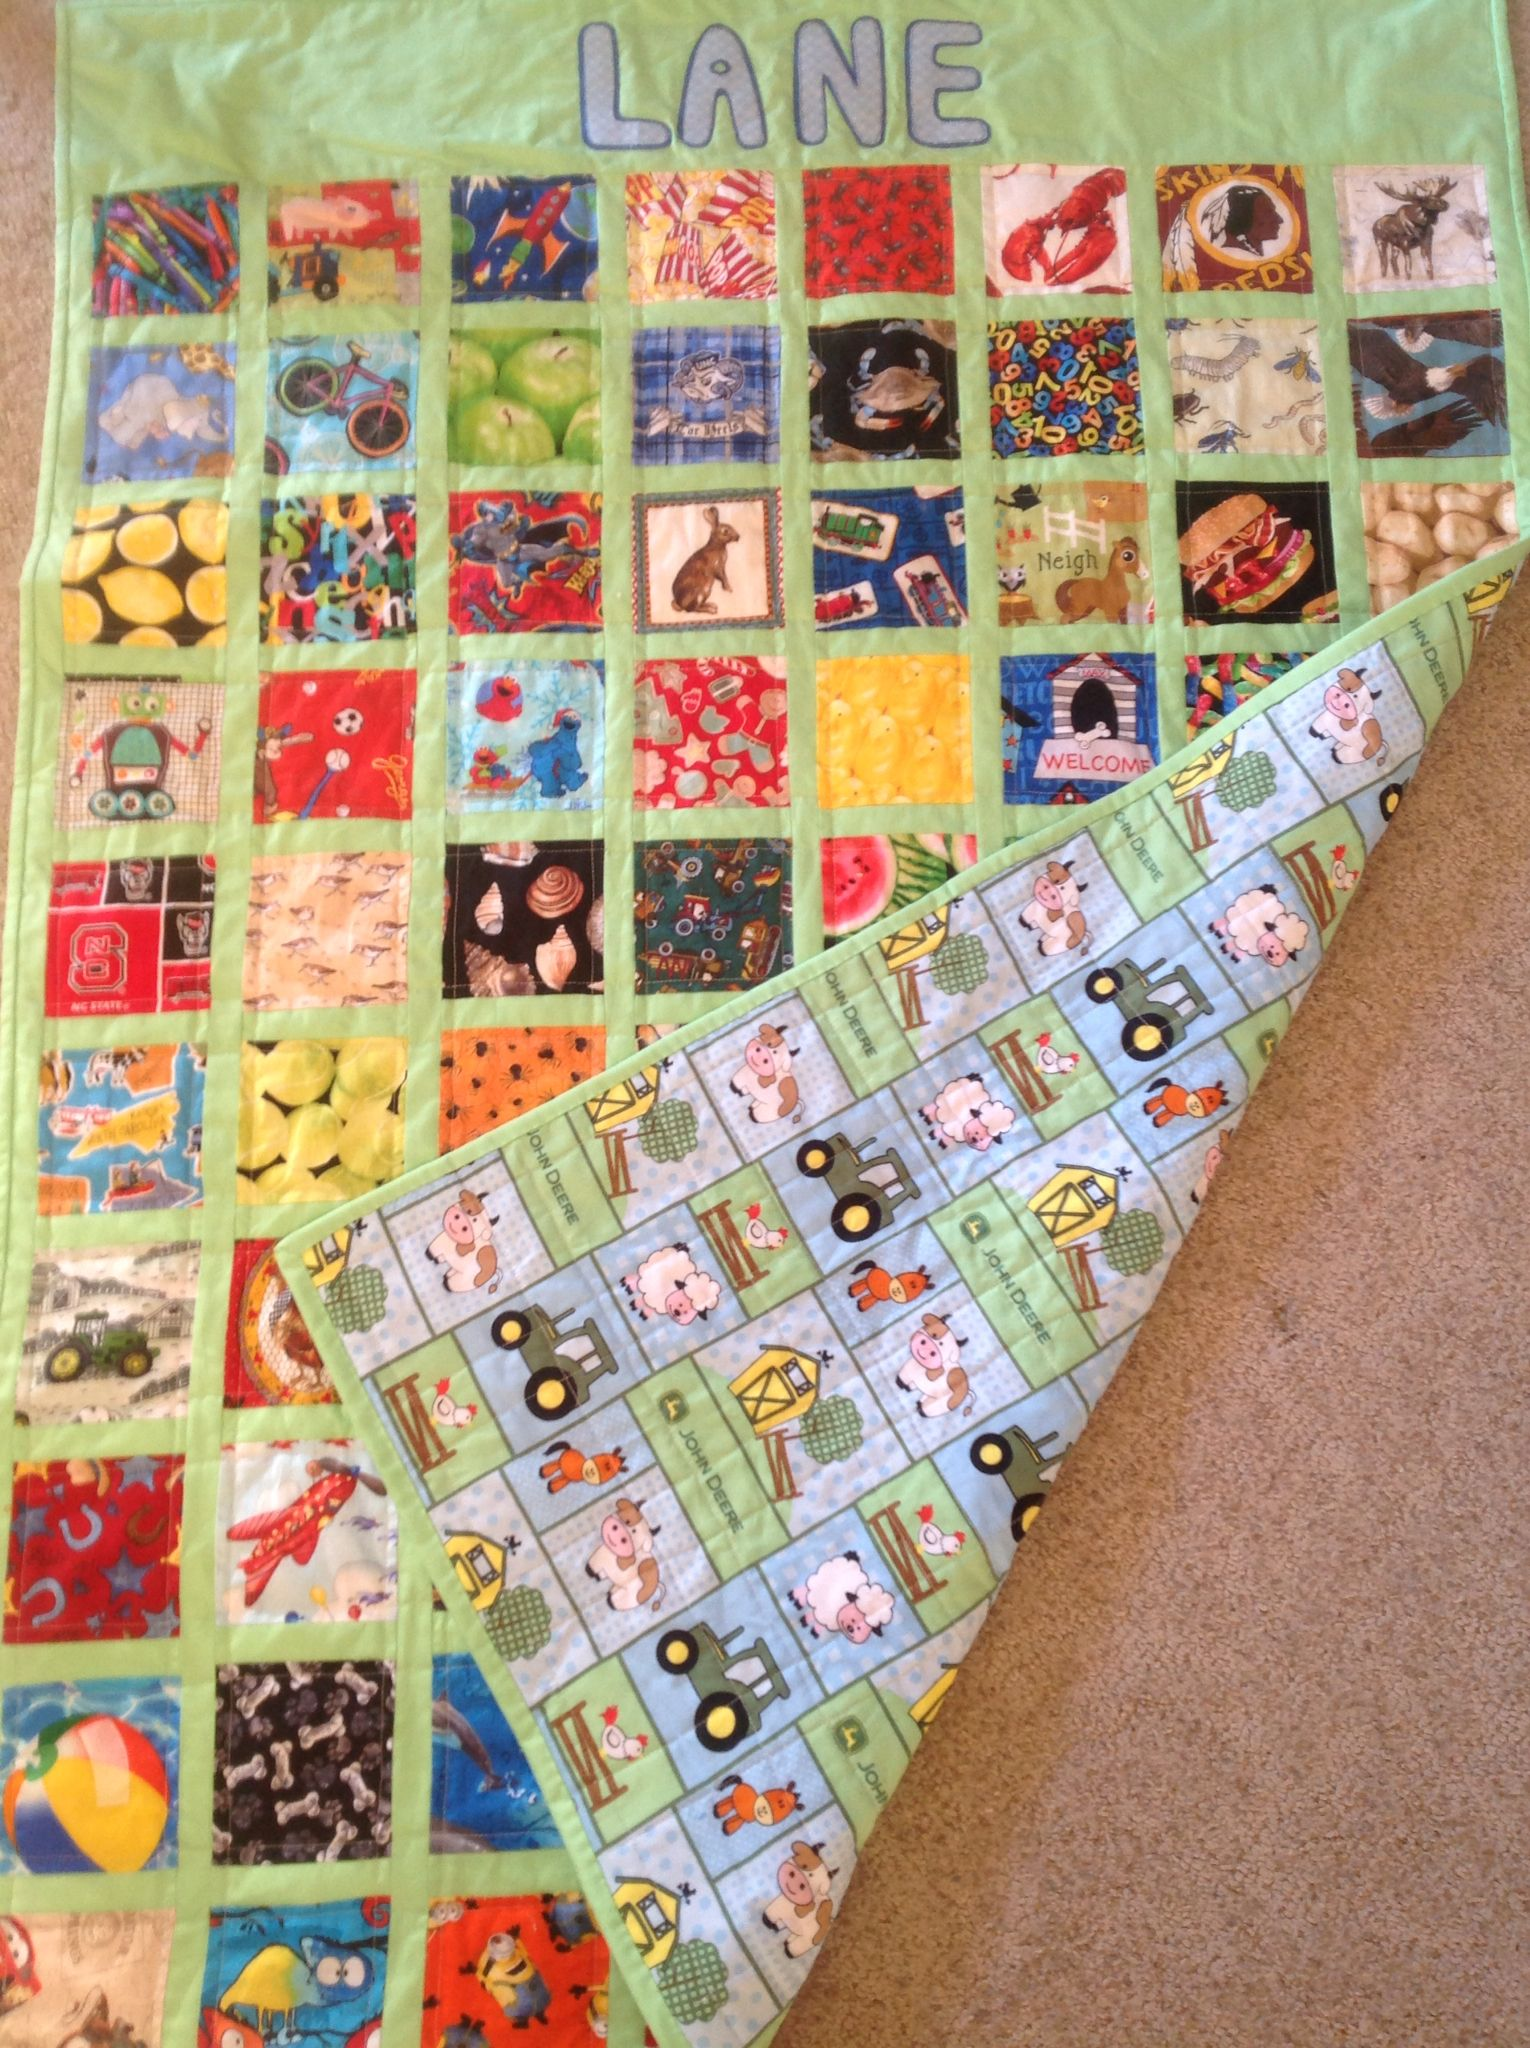 I Spy Quilt made with 4 1/2 inch fussy cut squares | I spy quilts ... : how quilts are made - Adamdwight.com